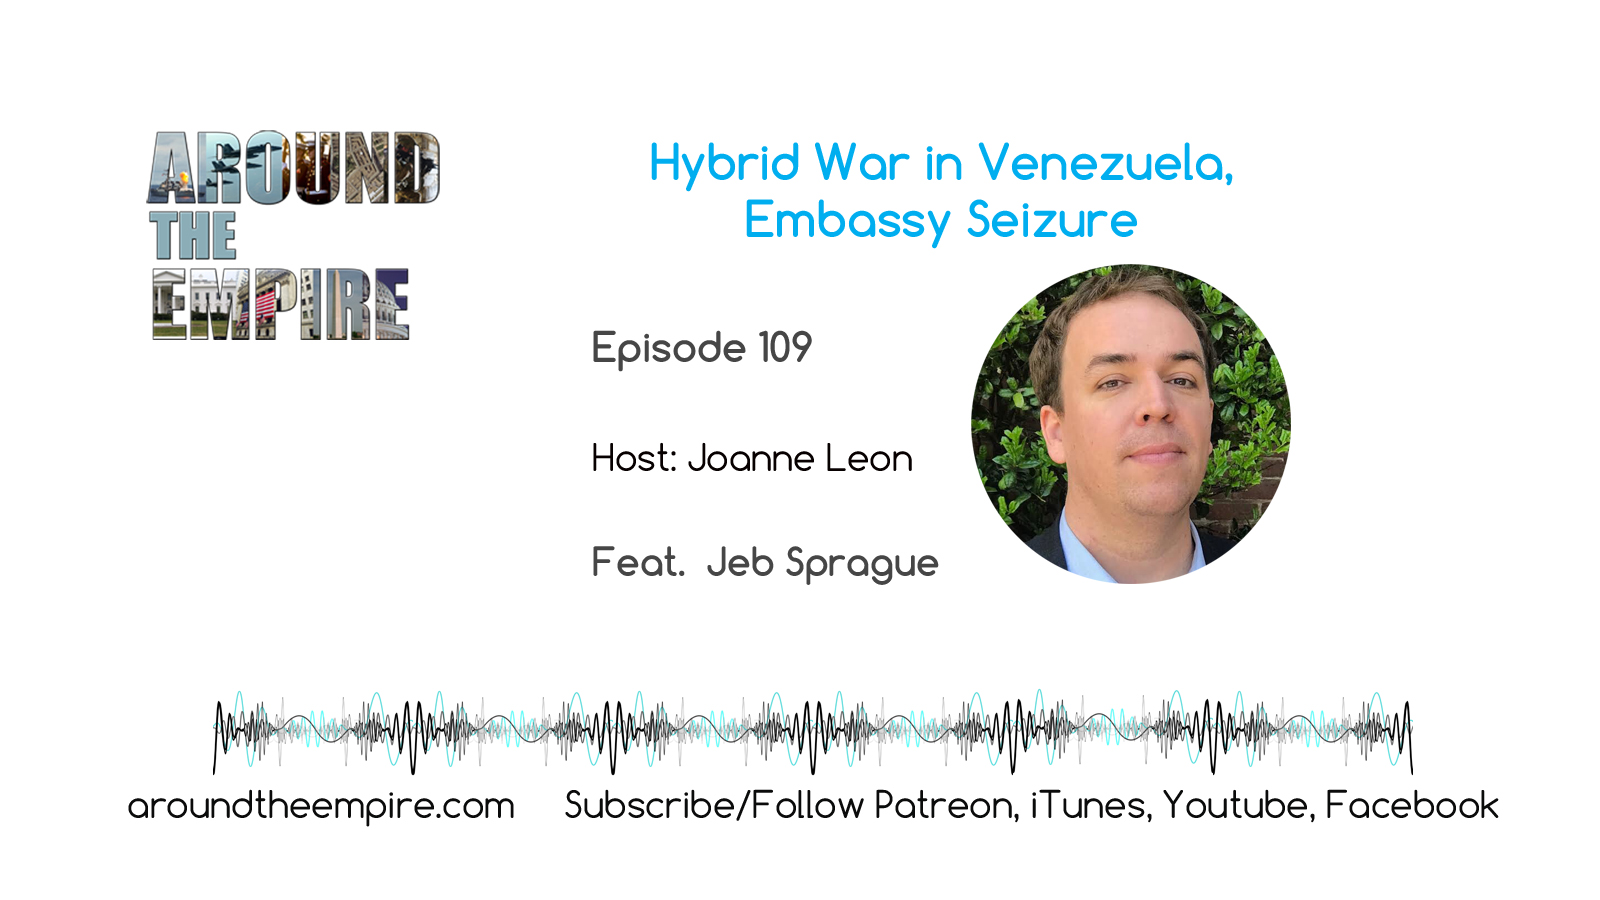 Ep 109 Hybrid War Venezuela feat Jeb Sprague